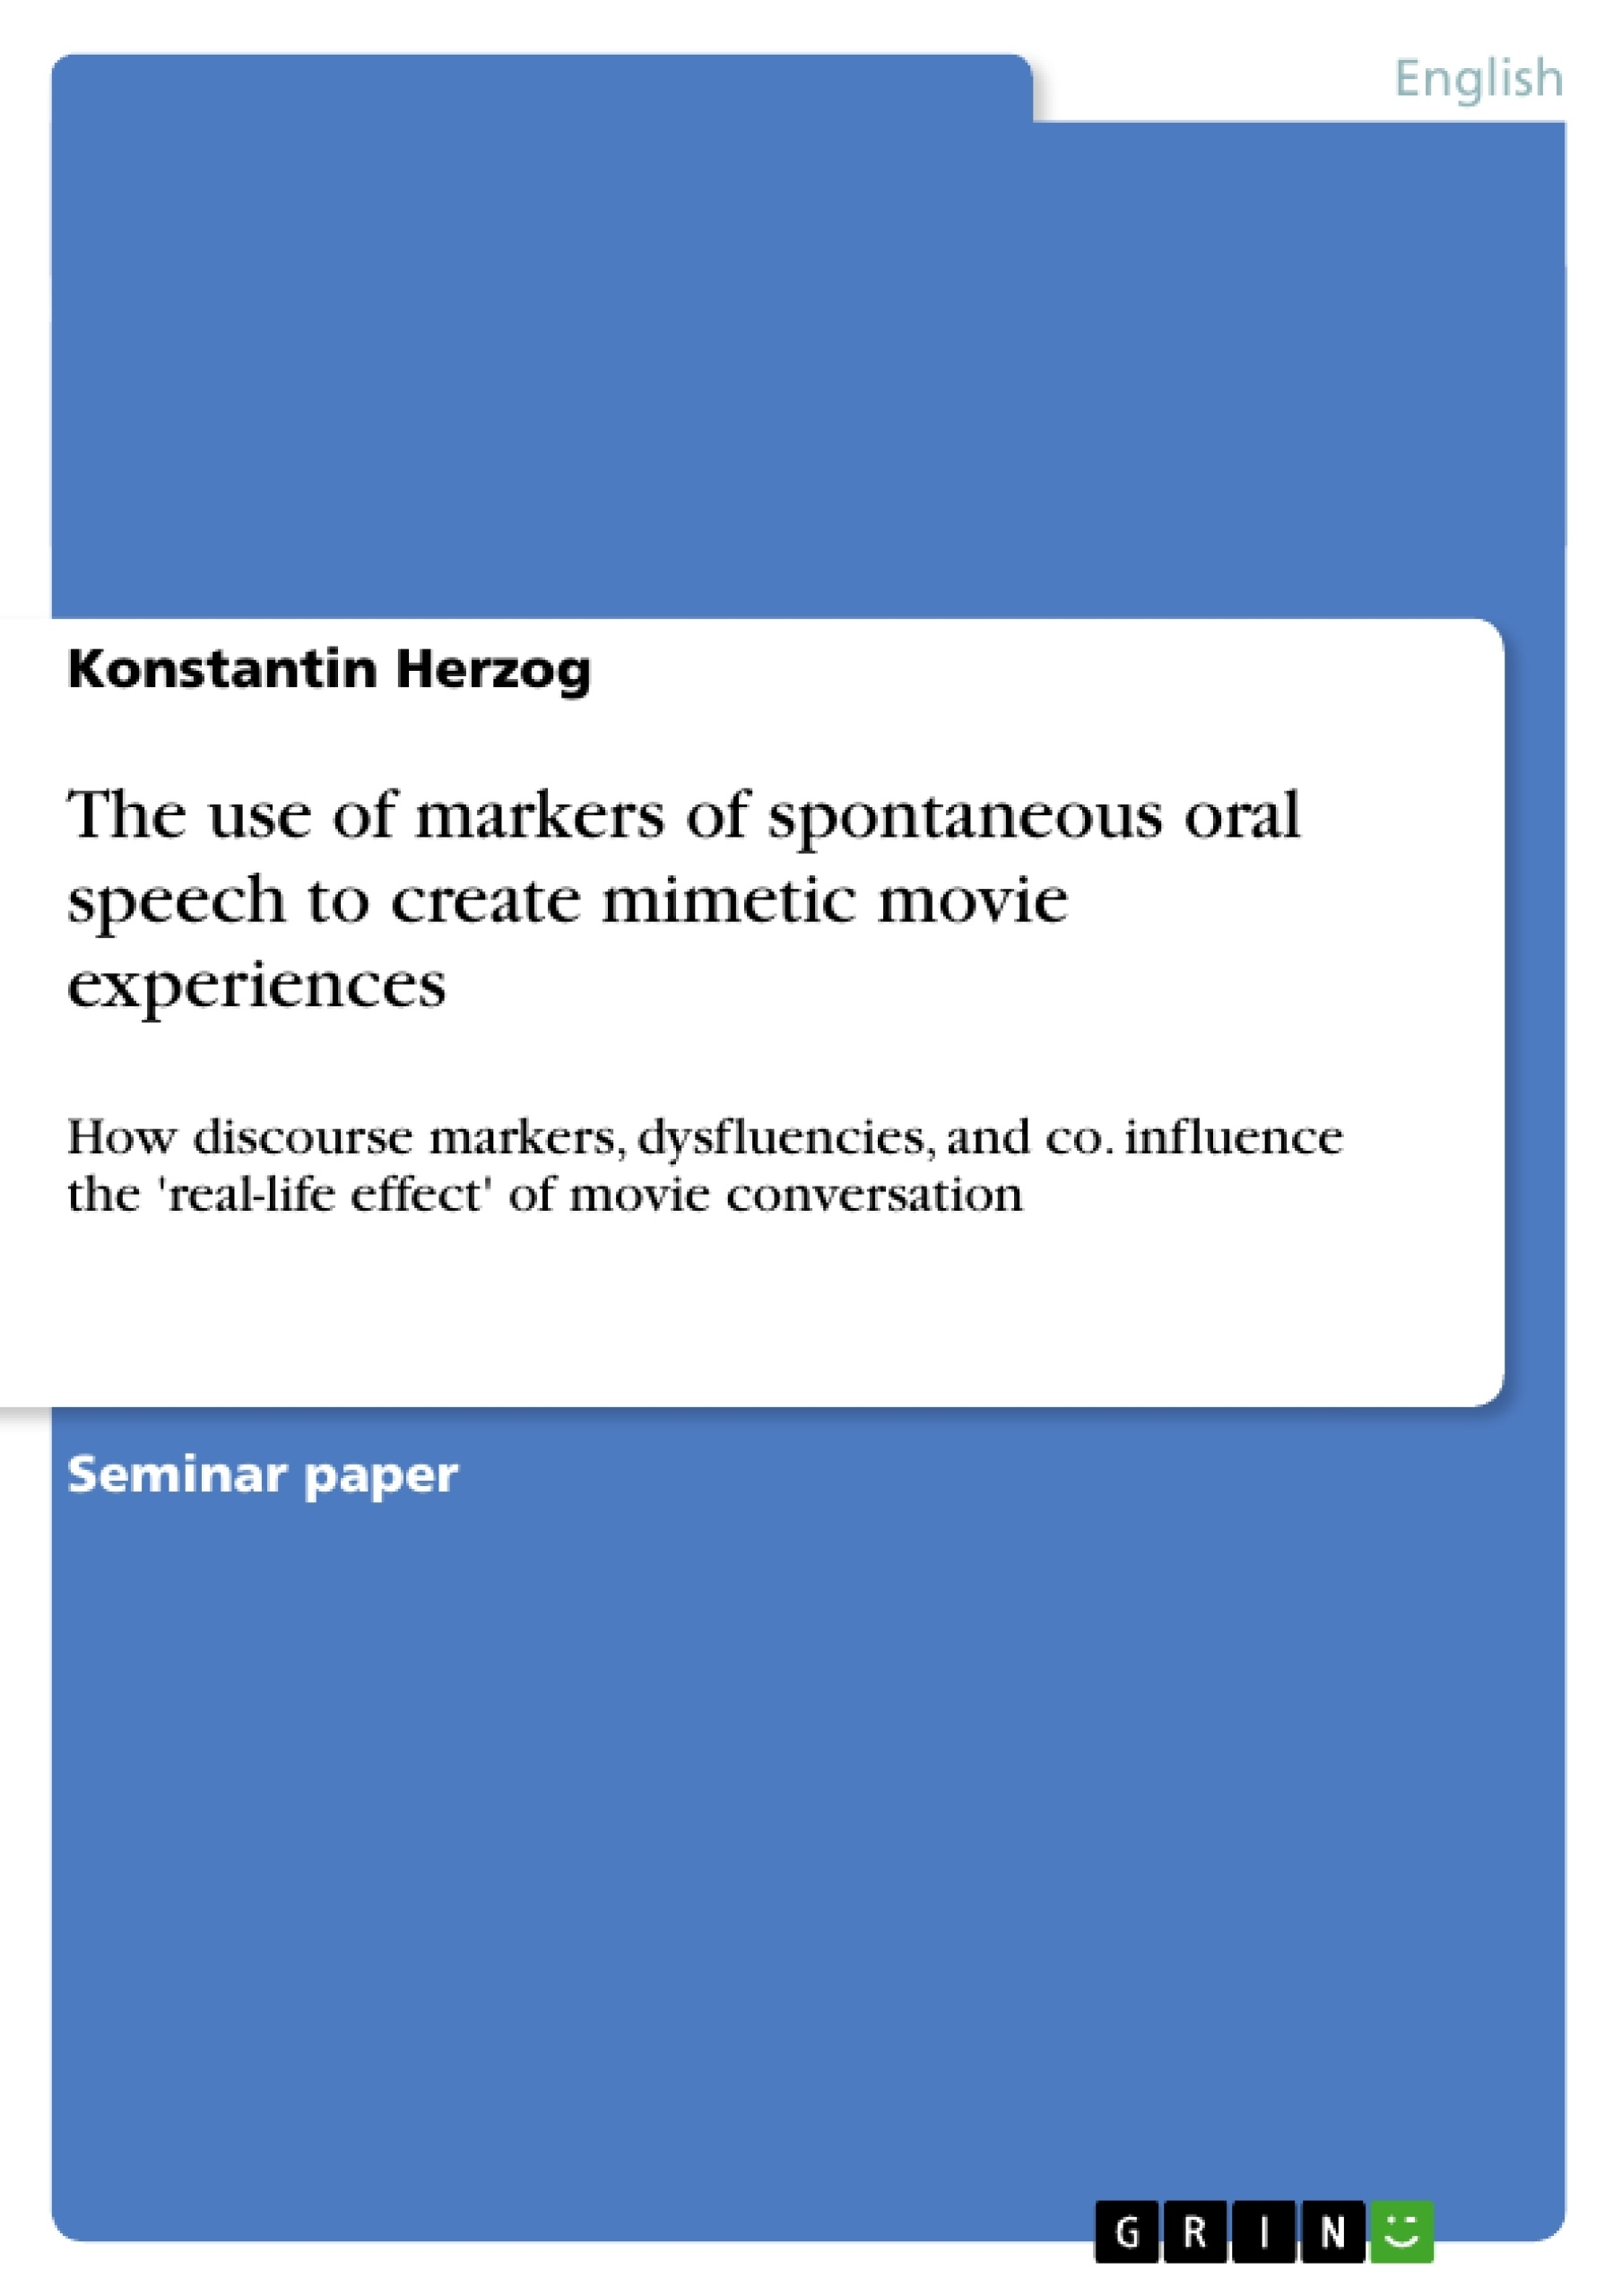 Title: The use of markers of spontaneous oral speech to create mimetic movie experiences